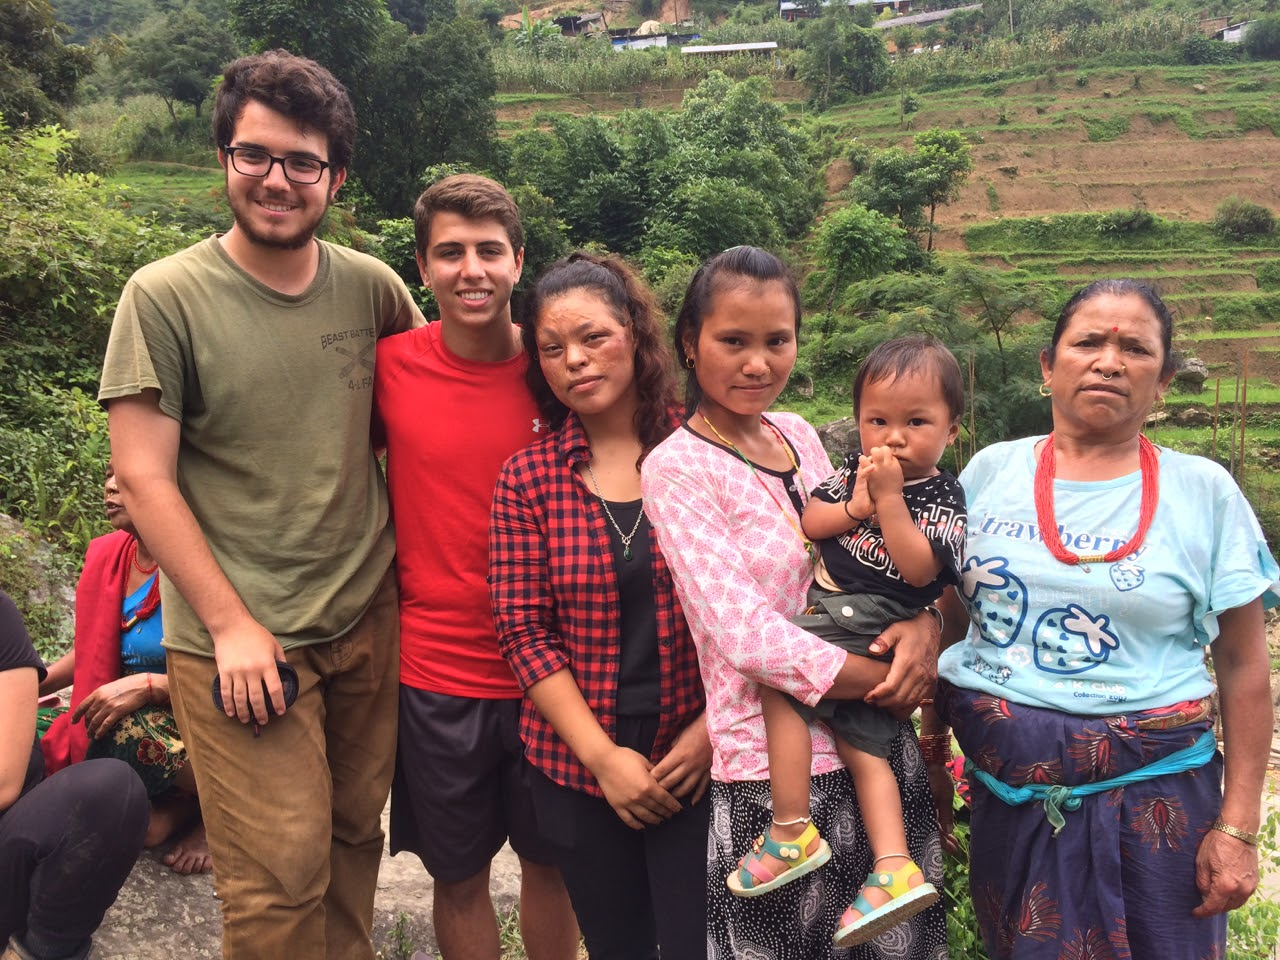 Summer Program - People with Disabilities | Global Routes: Nepal. The Roof of the World. Service and Cultural Immersion.